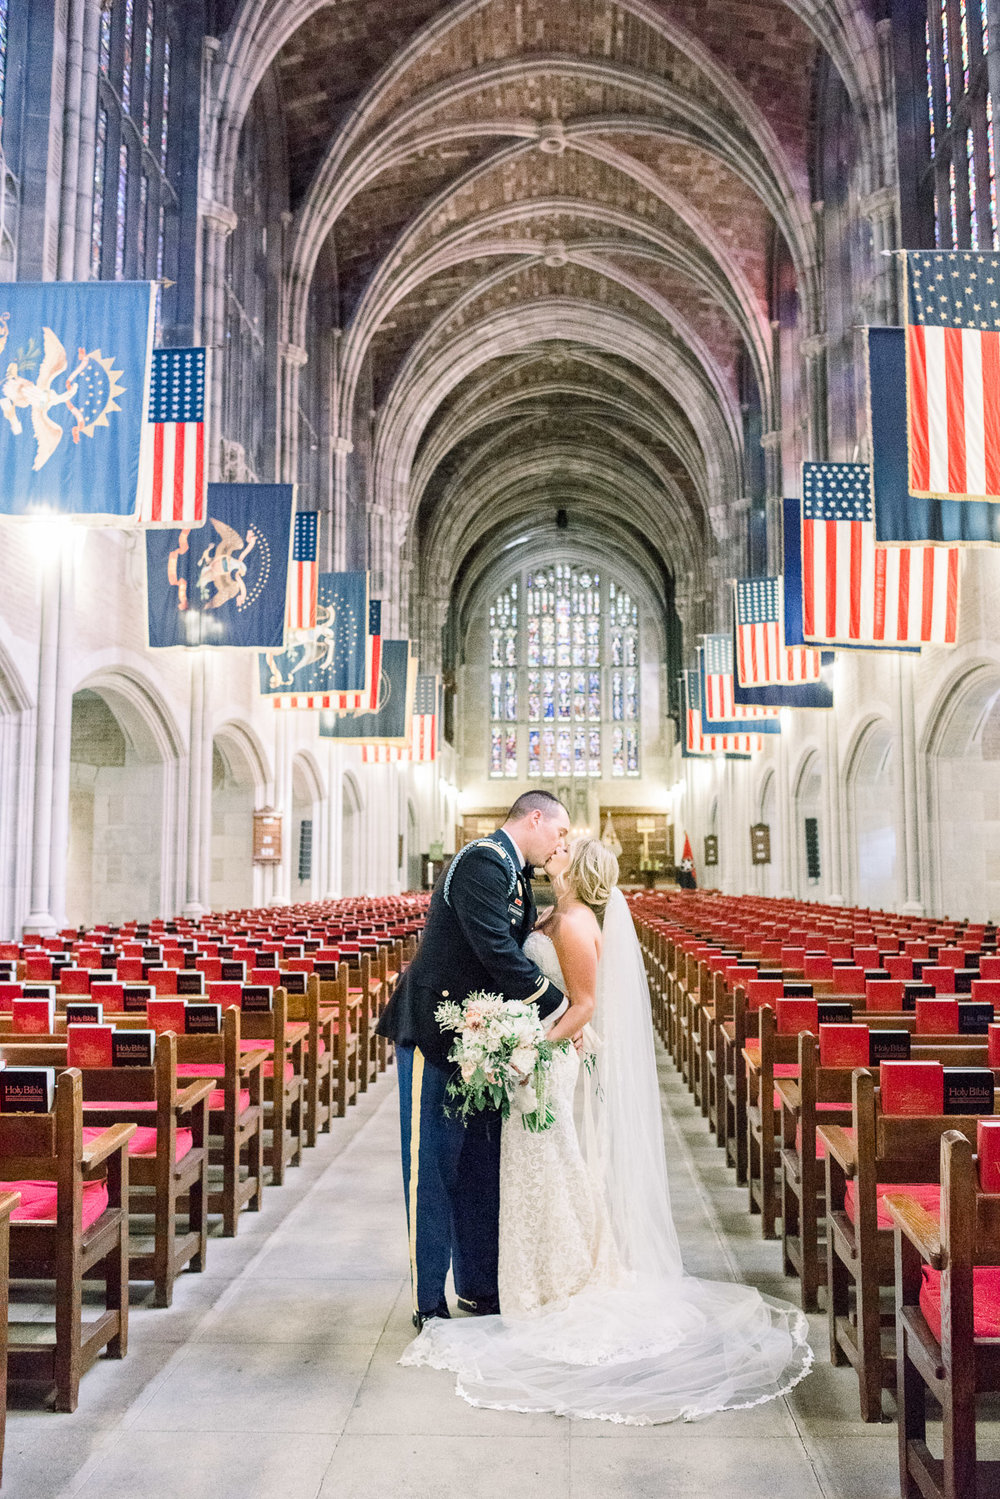 West Point Wedding by Michelle Lange Photography-41.jpg